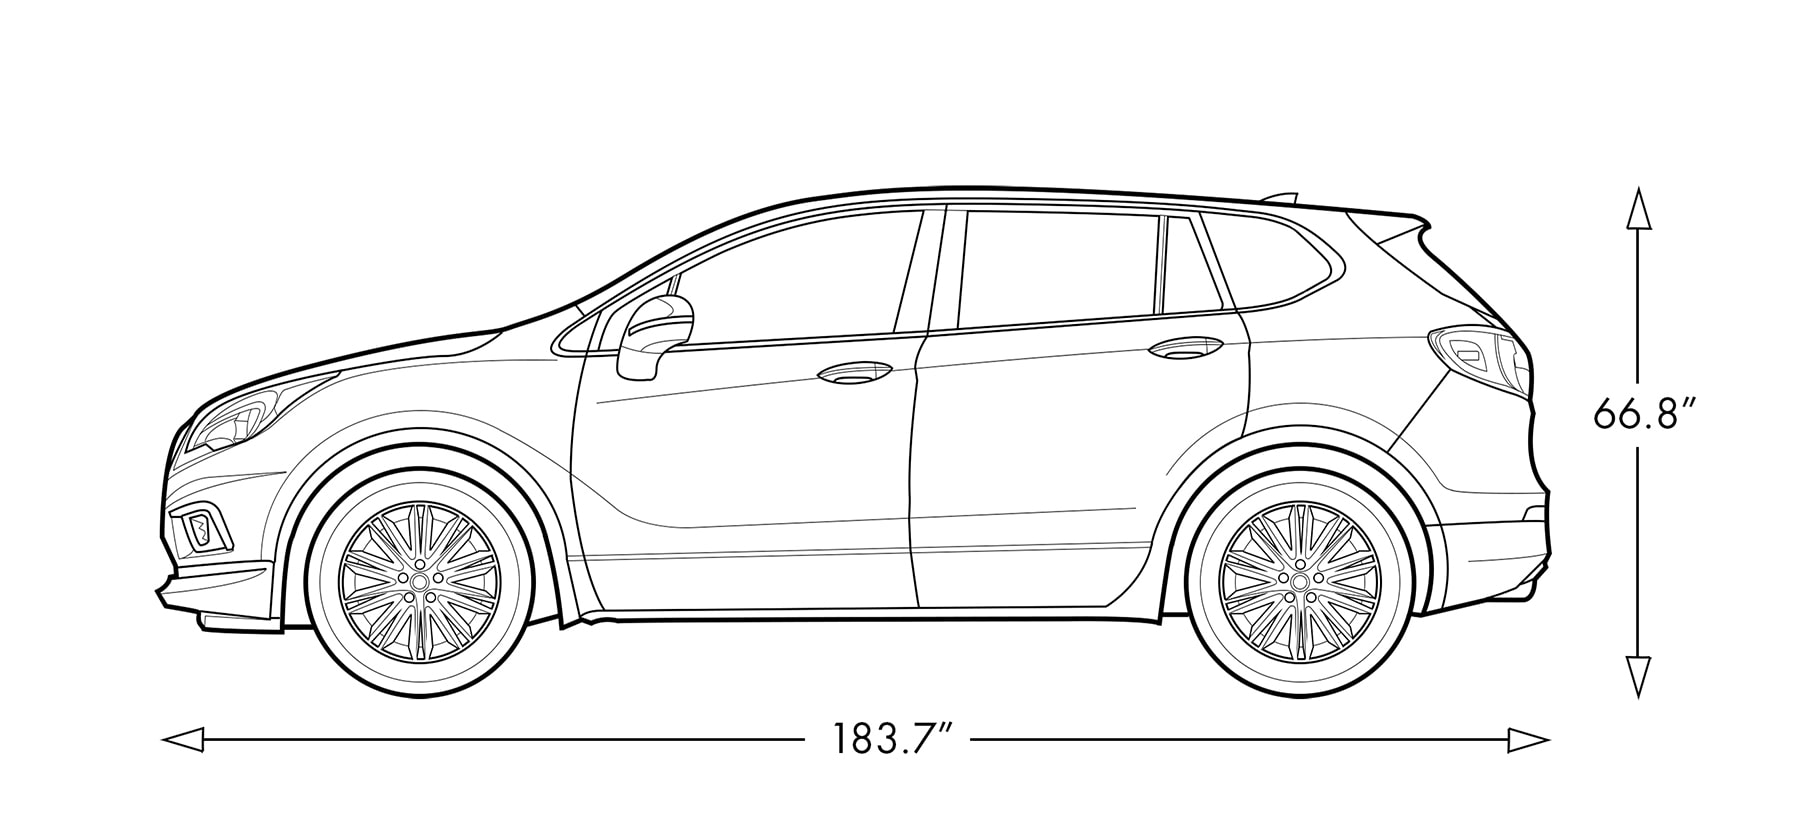 2019 Buick Envision Compact Luxury Suv Model Details 2008 Dodge 2 7 Liter Engine Diagram Image Of The